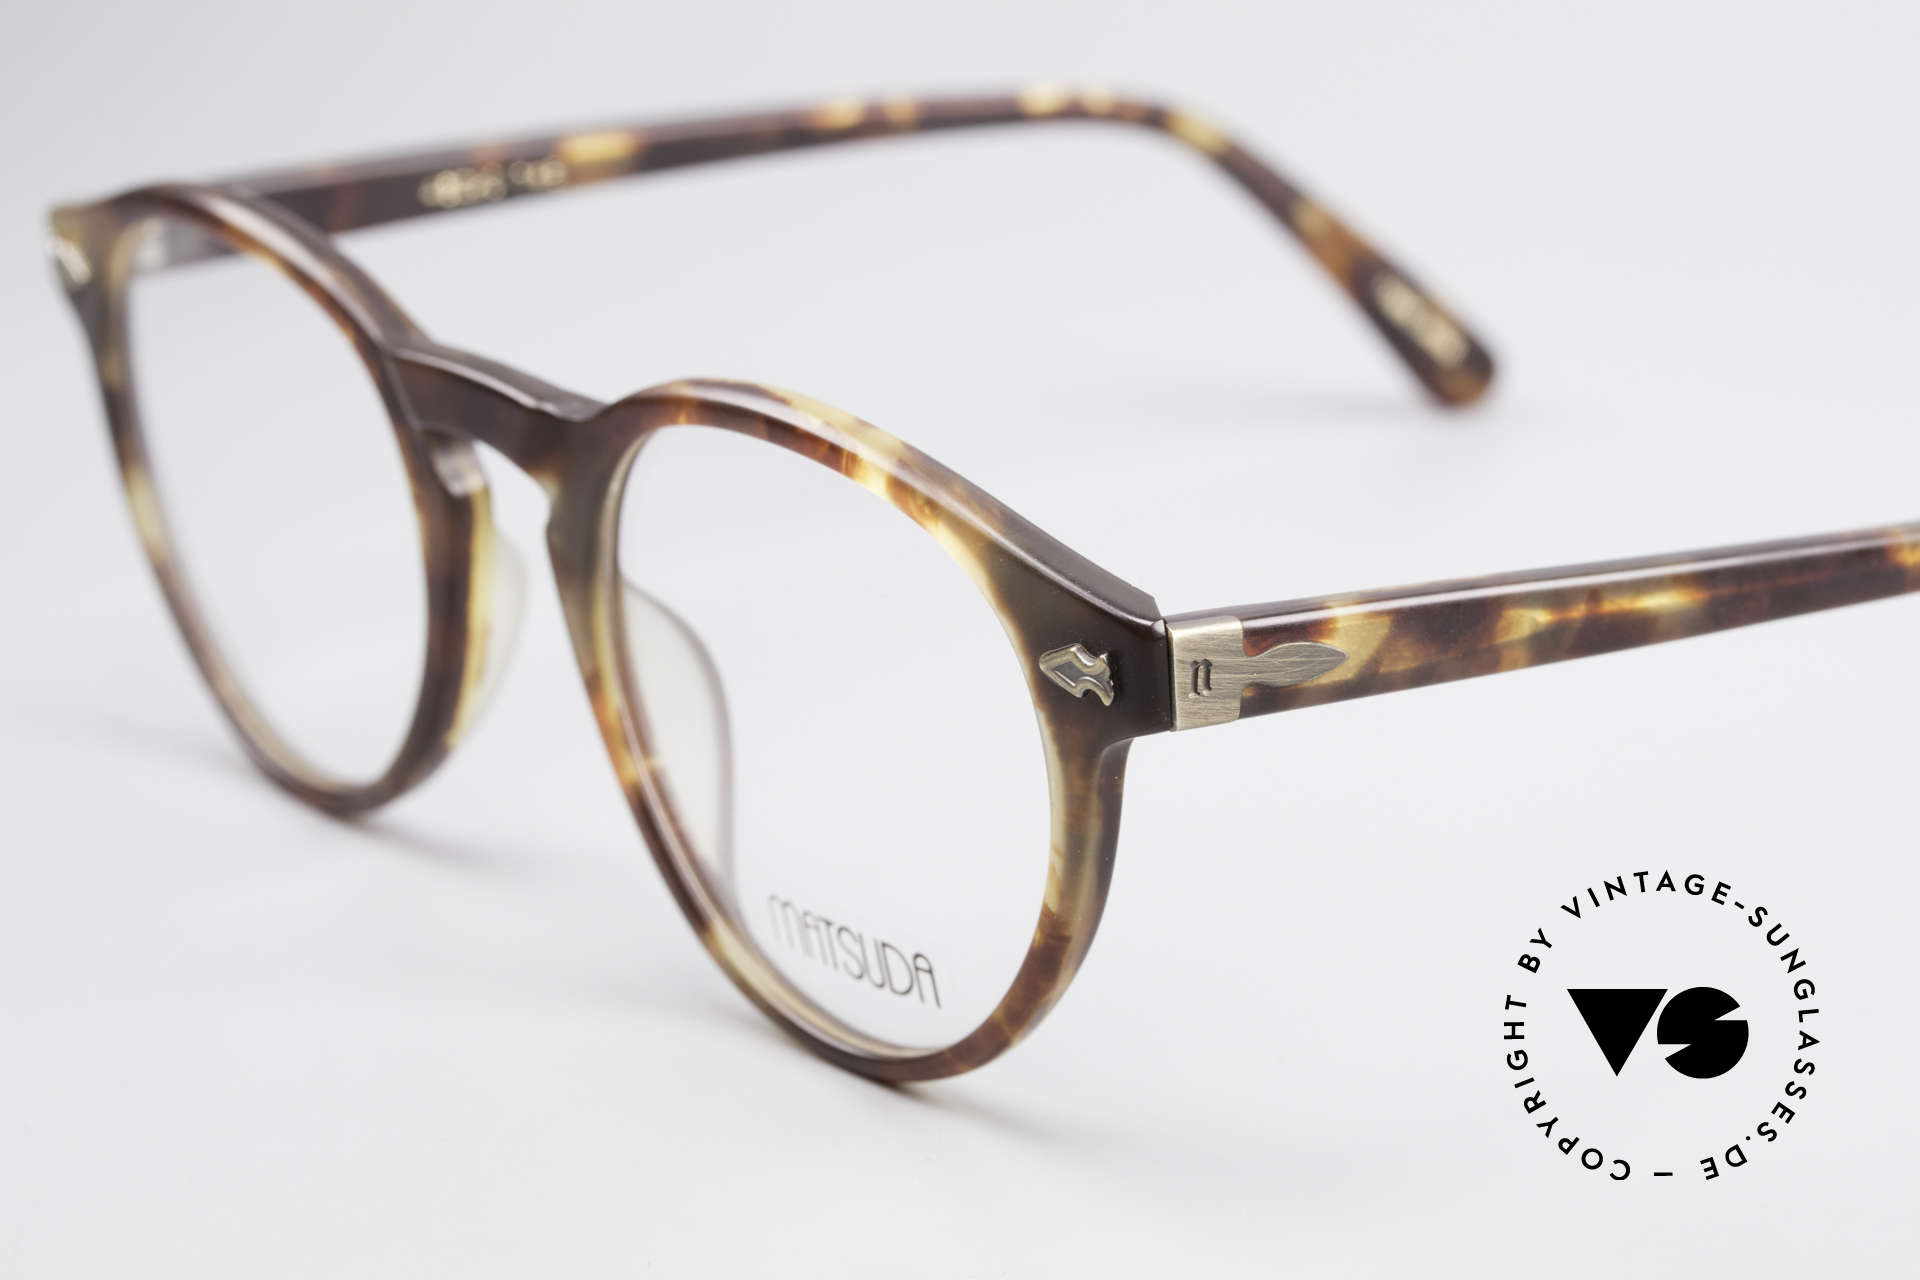 Matsuda 2303 Panto Vintage Eyeglasses, costly engravings / ornamentation (distinctive Matsuda), Made for Men and Women